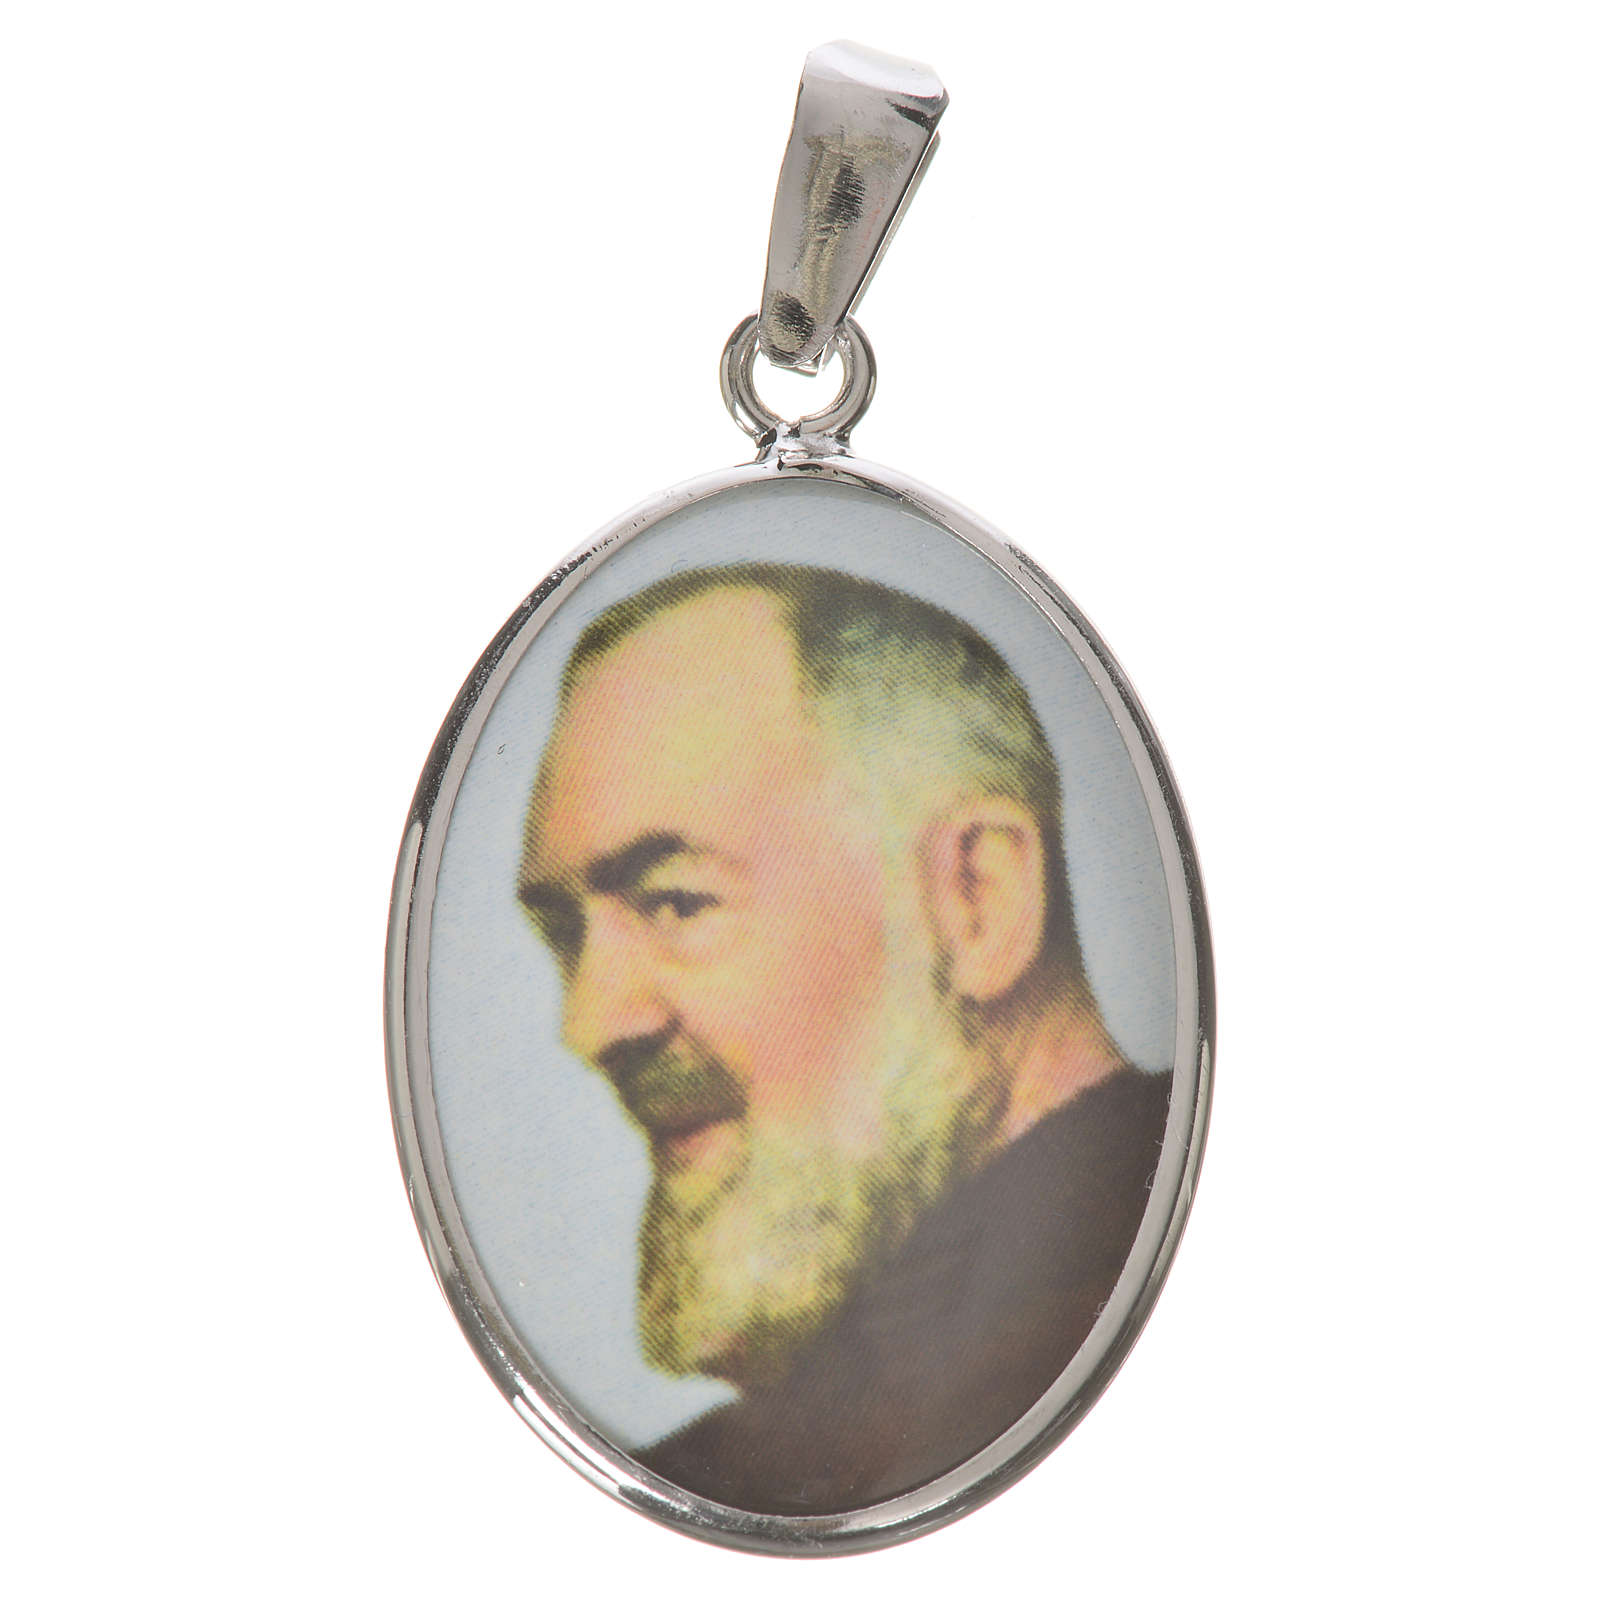 Oval medal in silver, 27mm with Saint Padre Pio 4